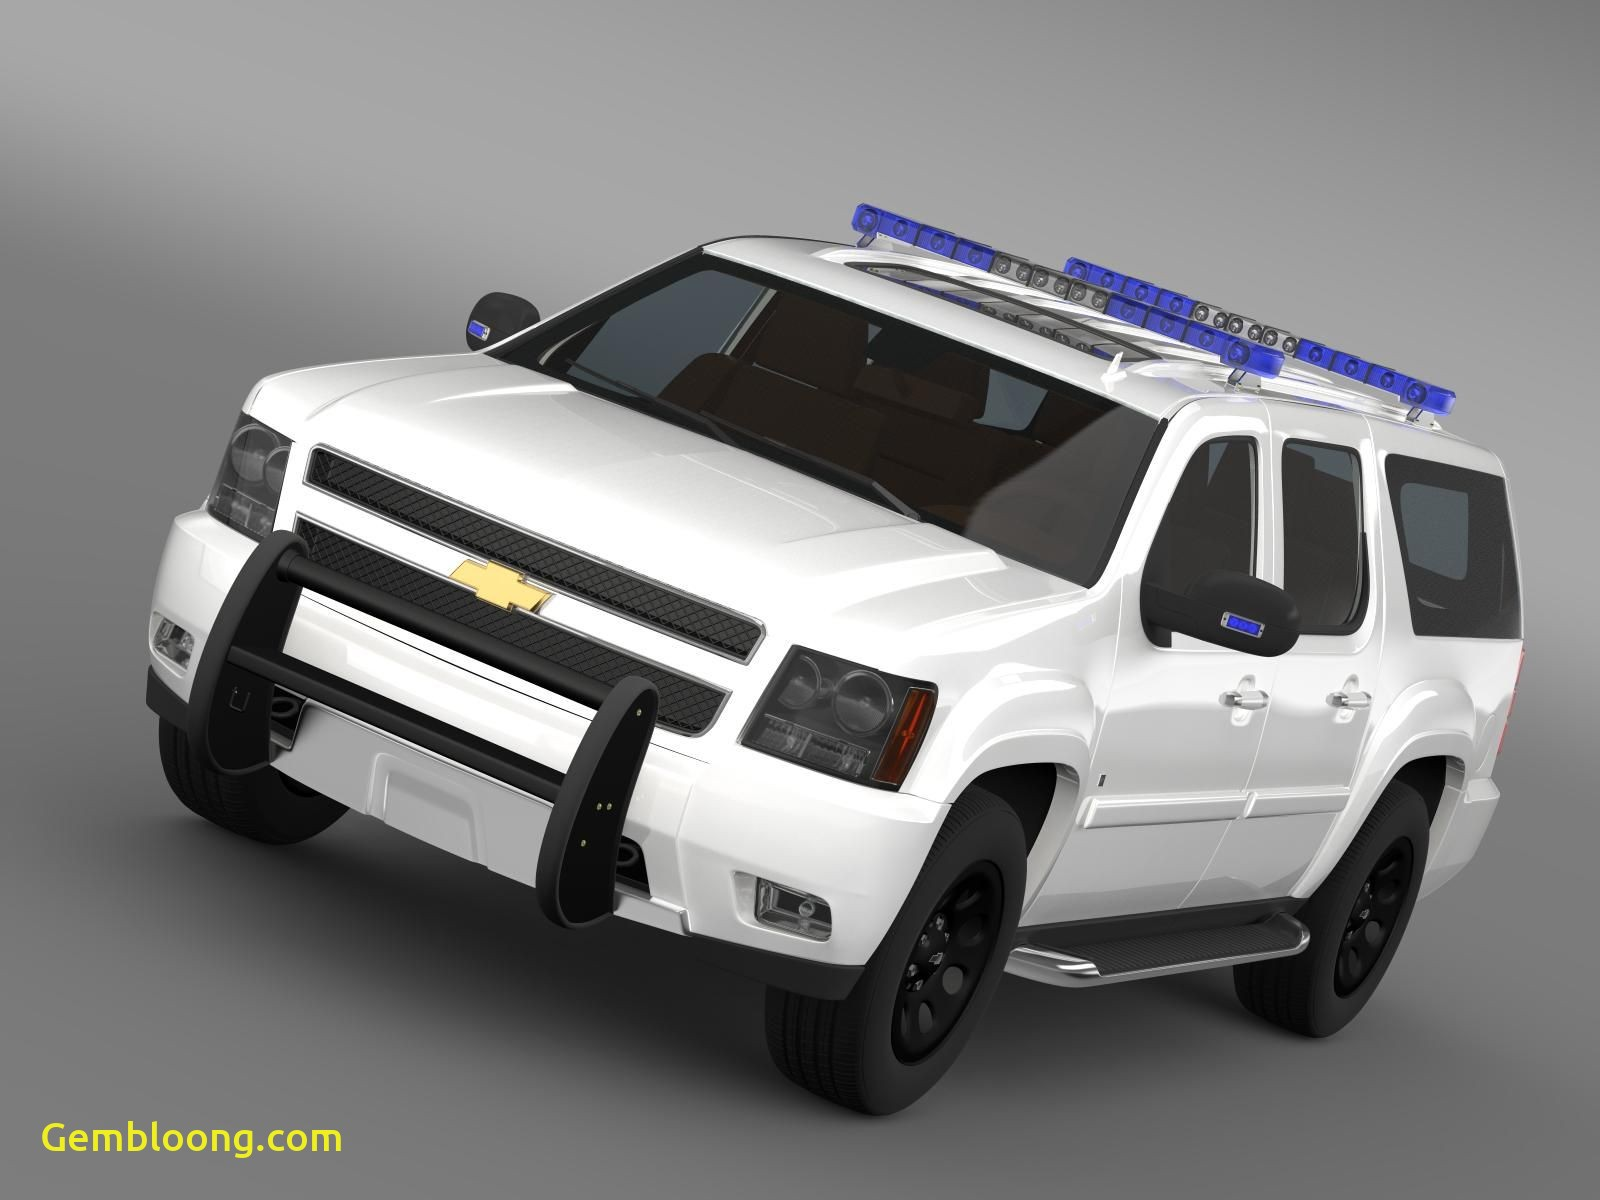 2015 Chevy Suburban Awesome Chevrolet Suburban Z71 Police 3d Model Let Me Represent You